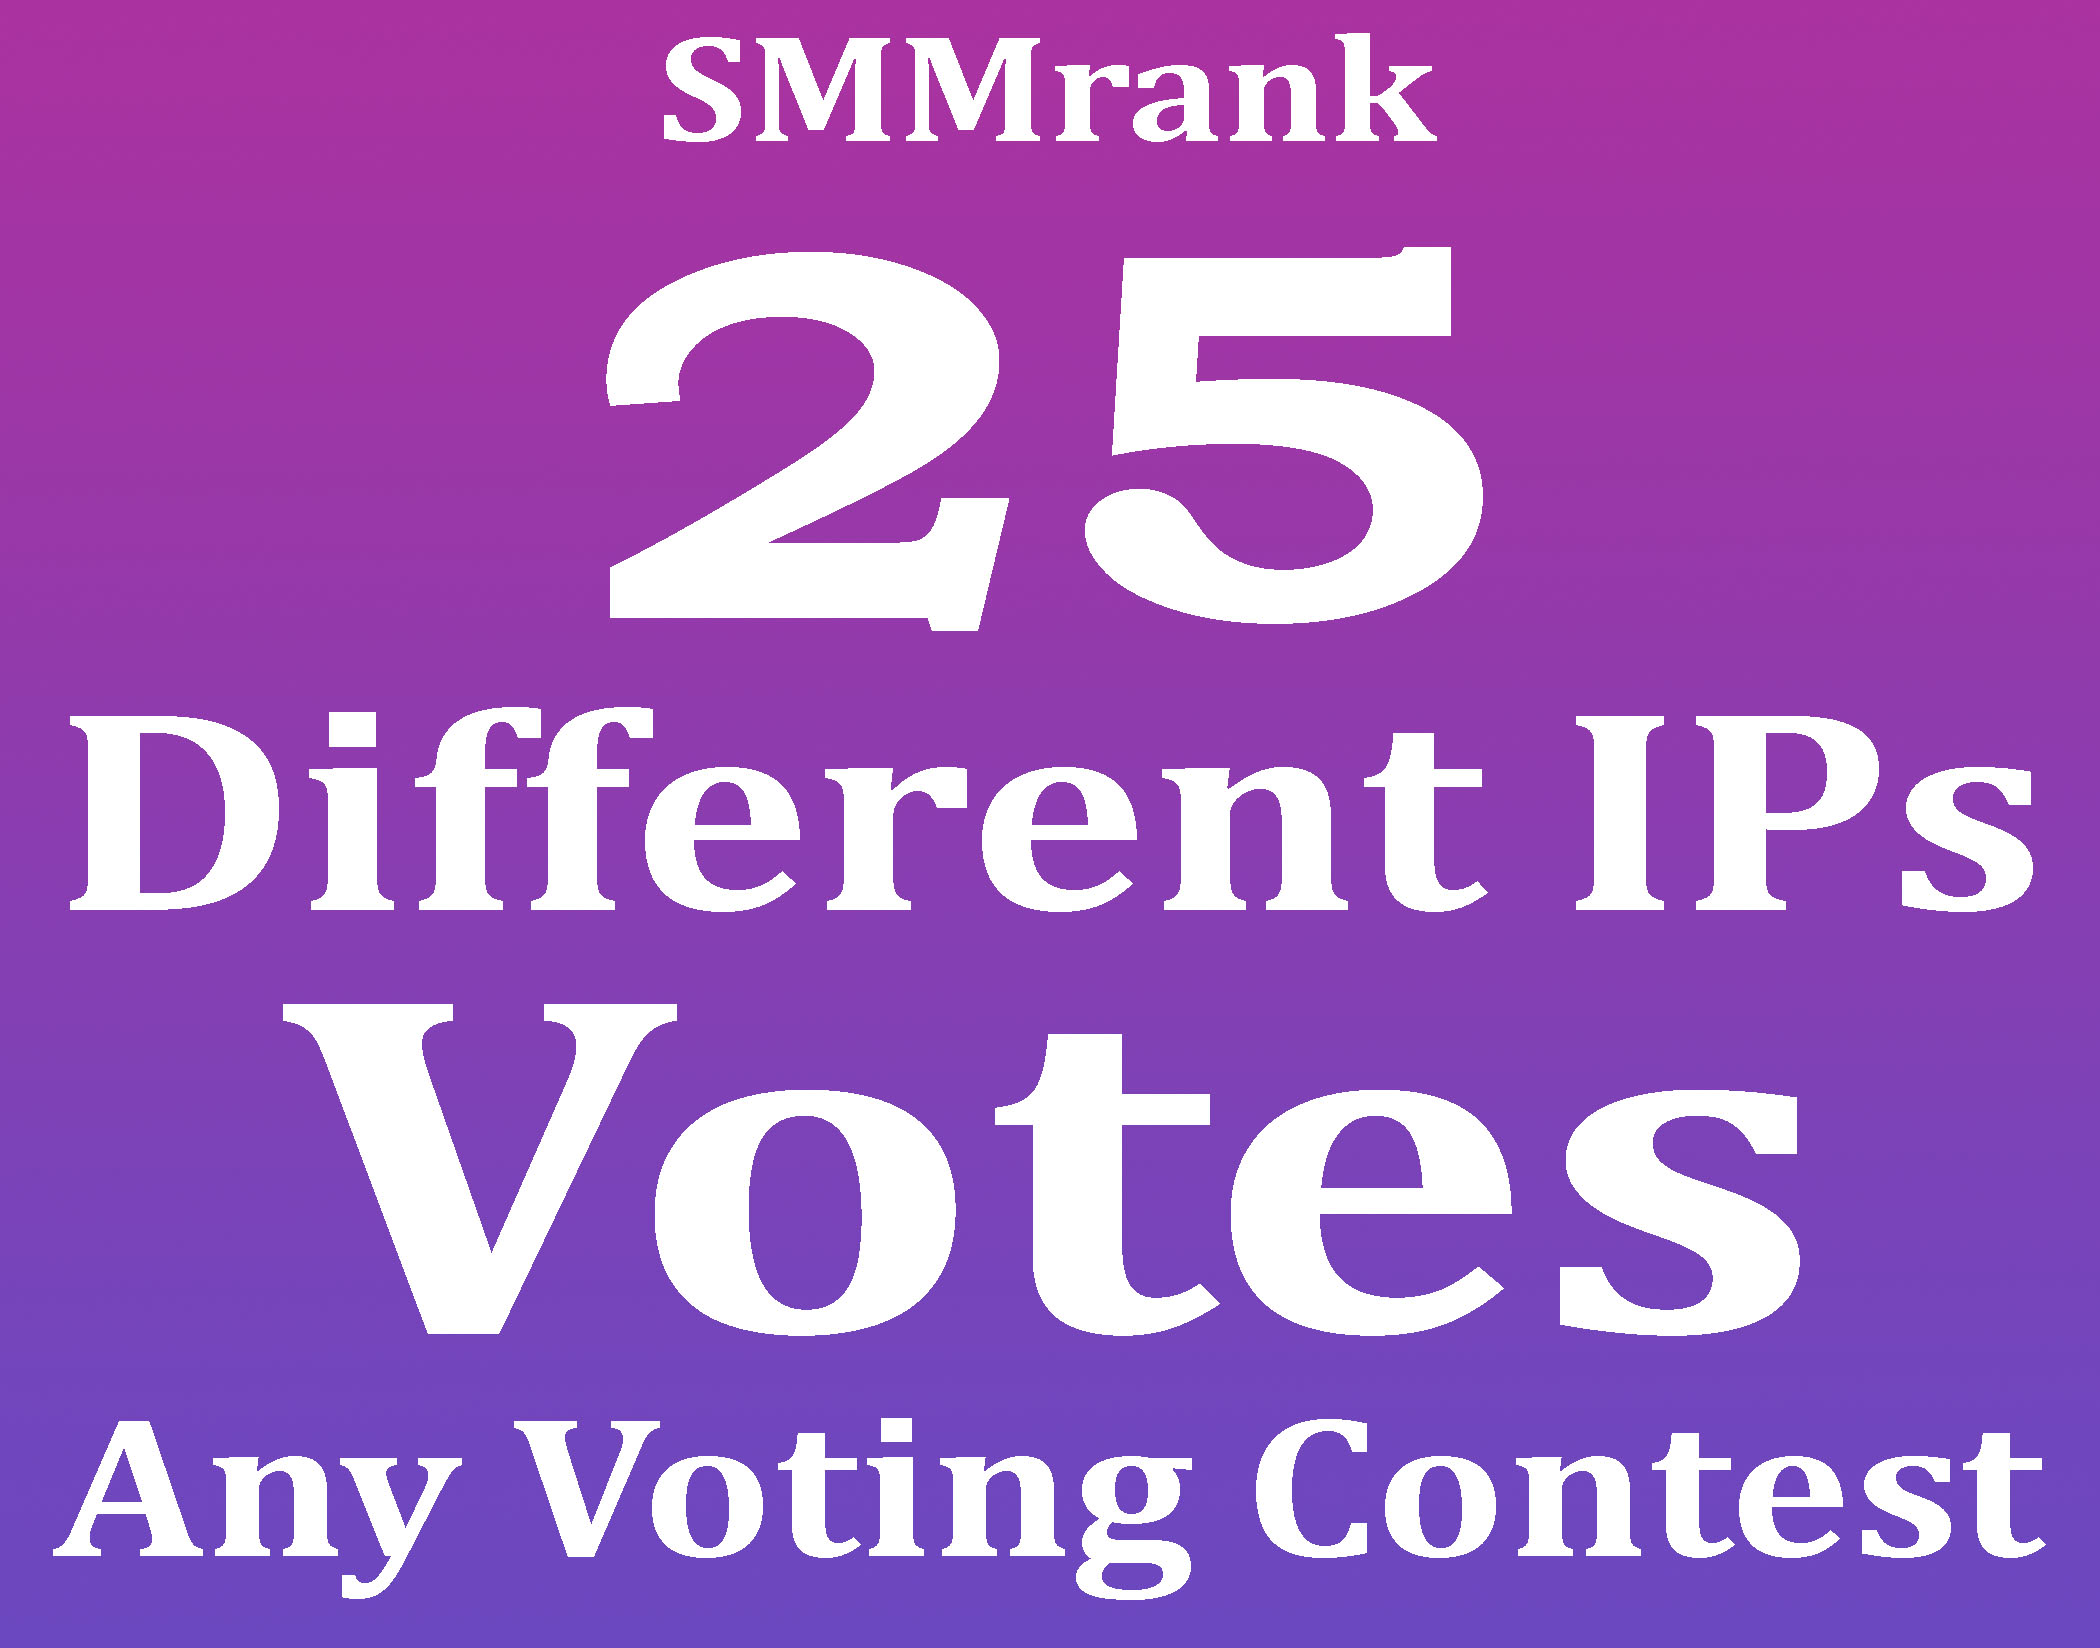 Give 25+ different IPs Votes for any voting contest within 3 hours